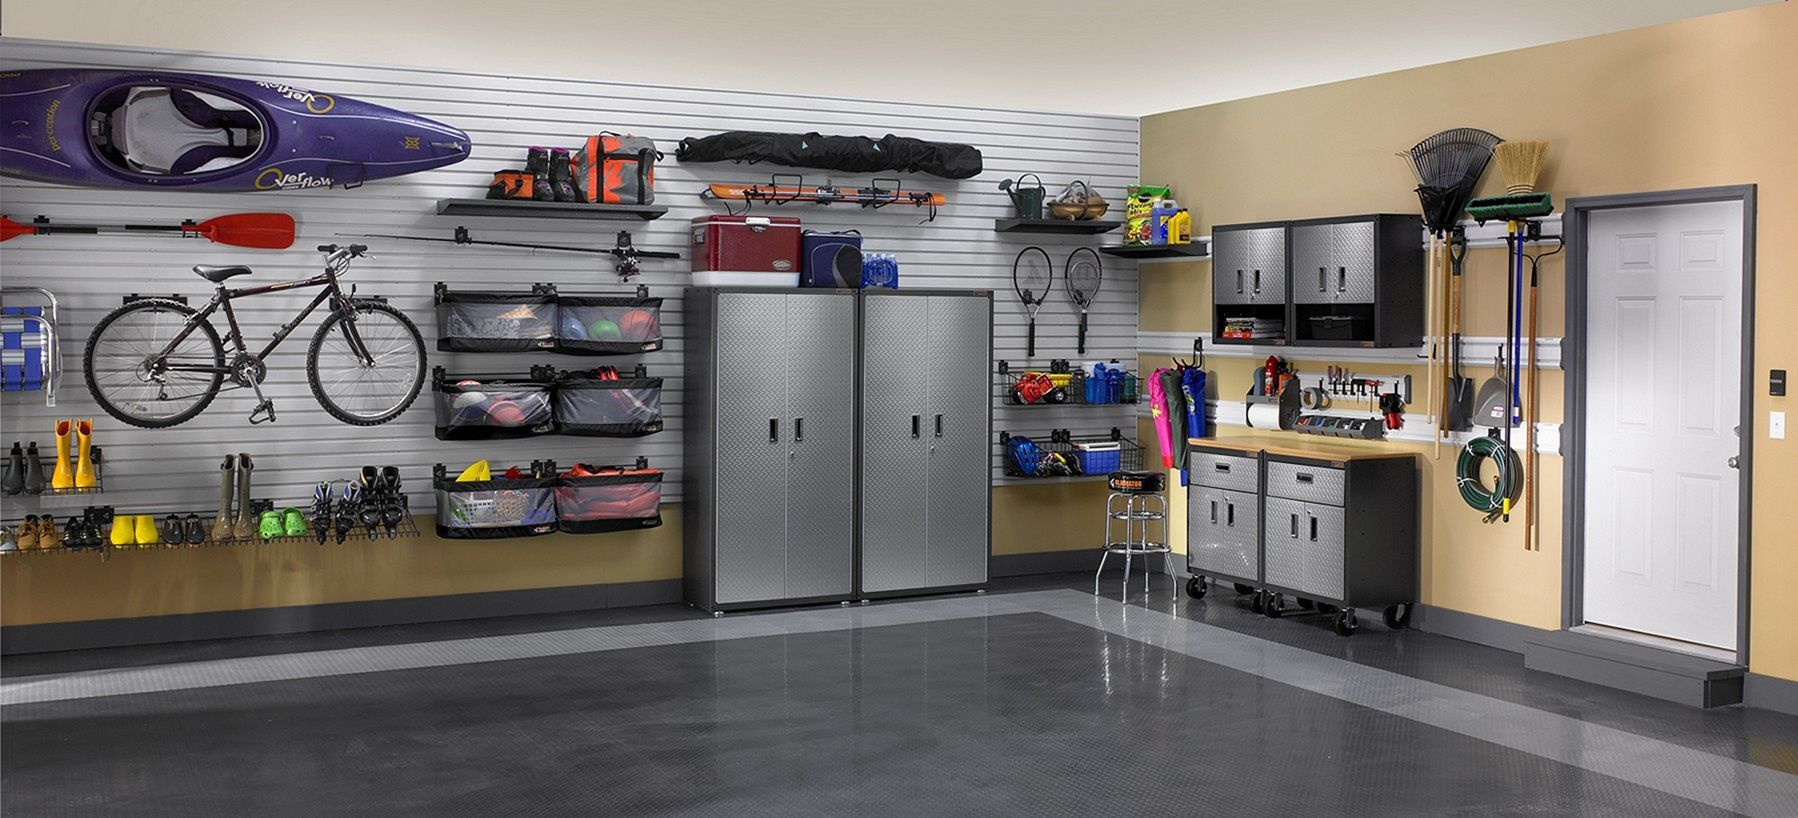 Gladiator Garage Storage Ideas Gladiator Garage Gladiator